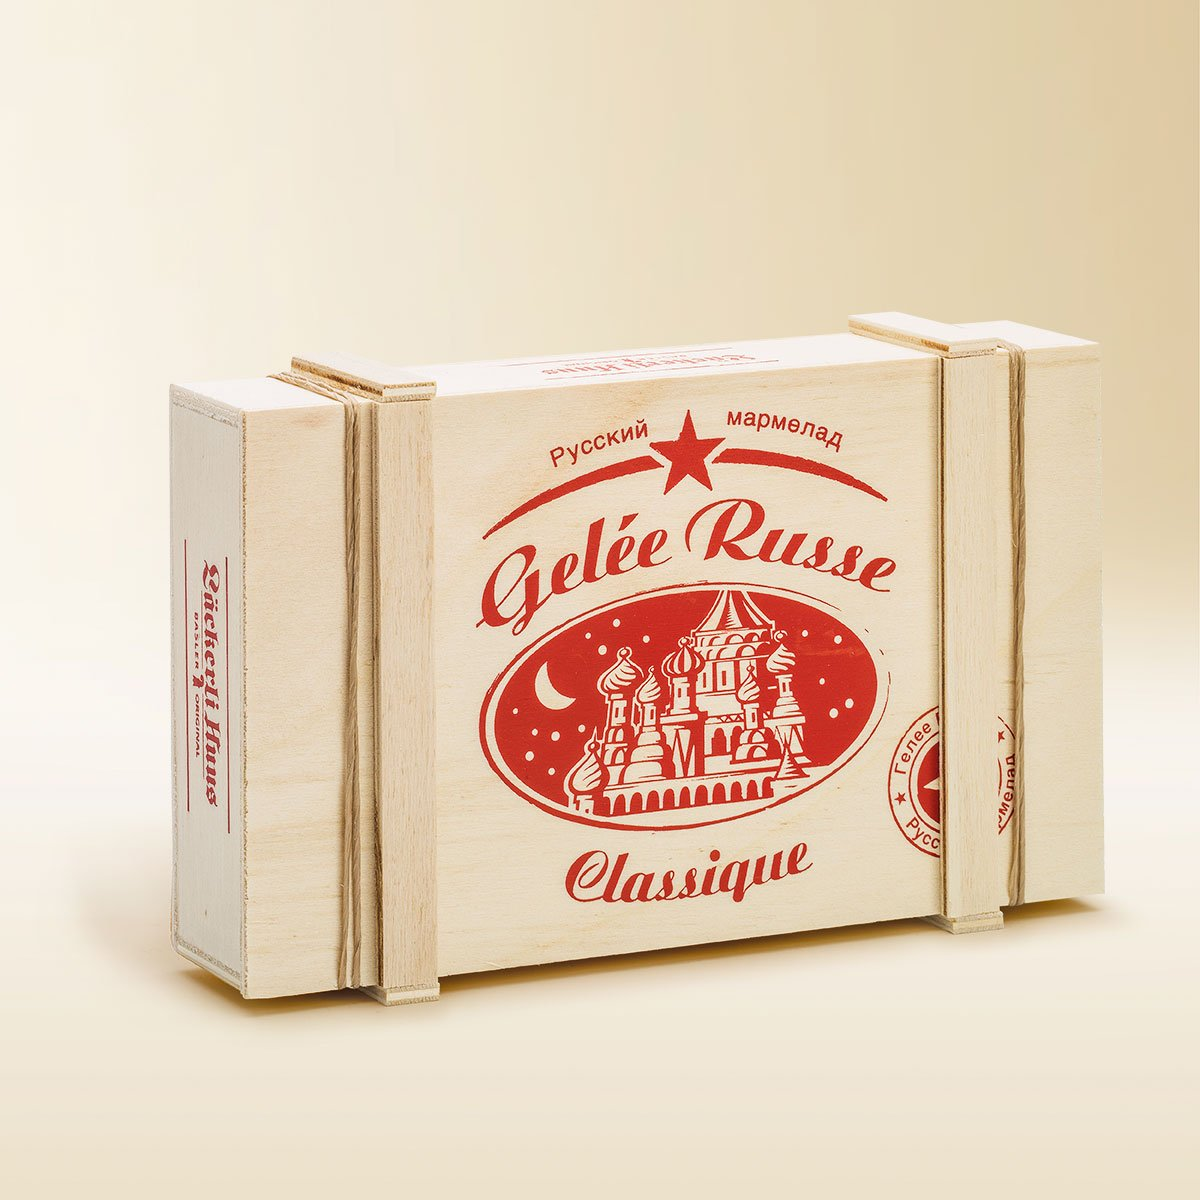 Gelée Russe Classique in a gift pack 450g